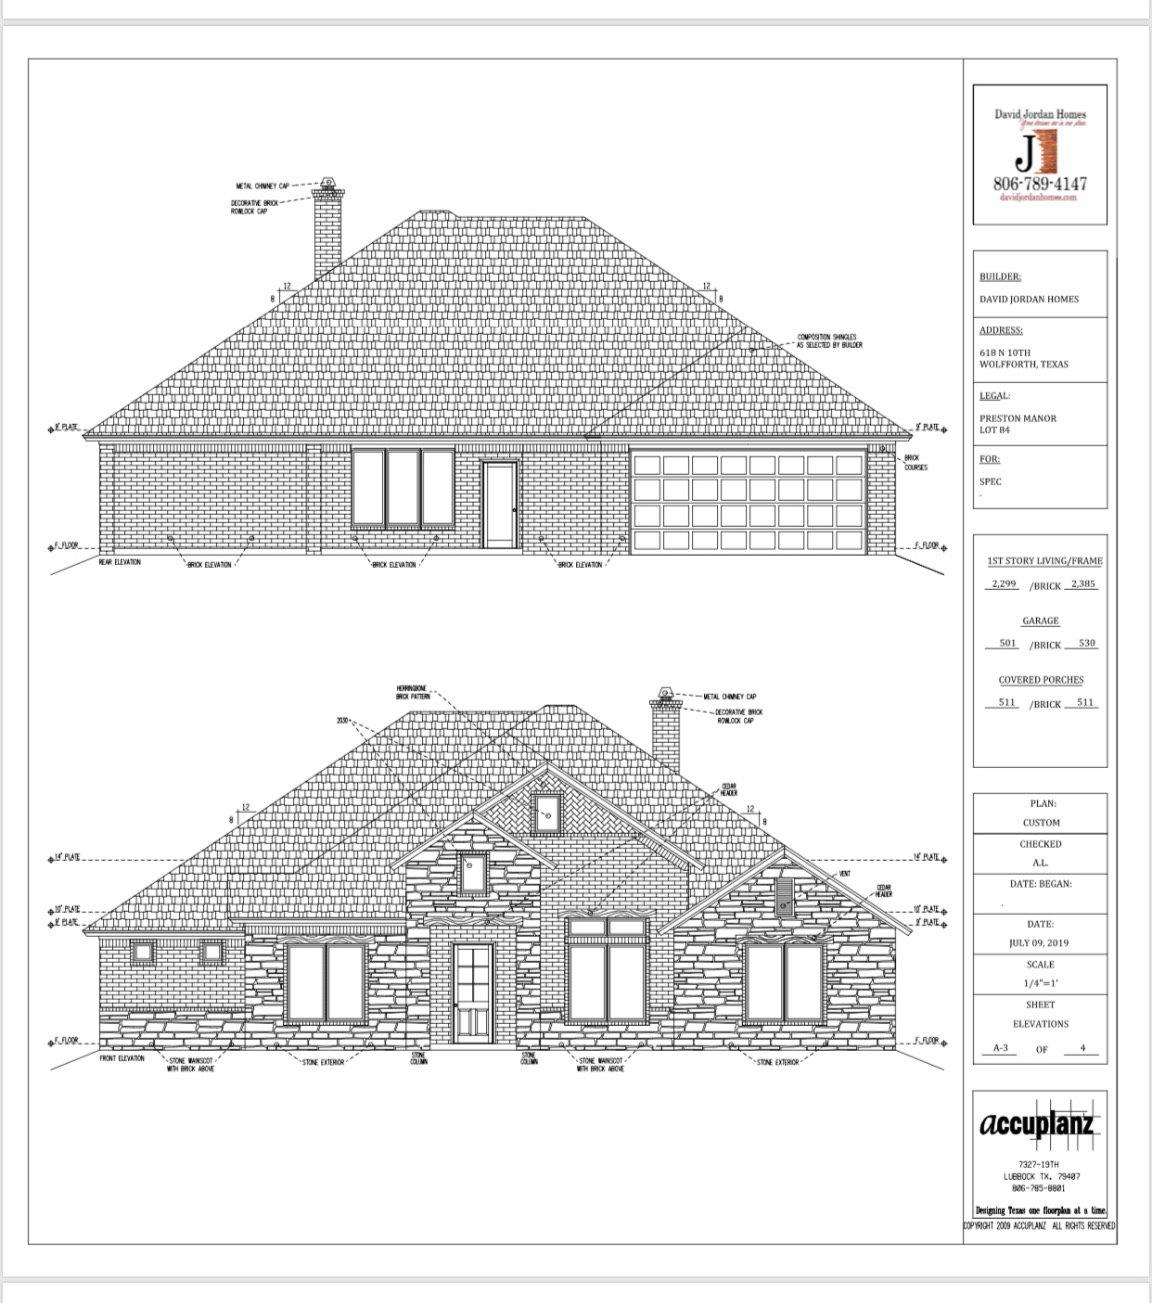 Are you looking for a brand new home, but don't want to make ALL of the decisions?!  This home, by David Jordan Homes, is in the beginnin stages and would allow you the perfect opportunity to come in and make some decisions on the final touches or just leave them as they have in the plans.  It is the perfect scenario!  It will feature 3 bedrooms, a bonus room that makes a perfect office, formal dining or playroom, and a gorgeous open concept living space.  The outdoor area will have a large covered patio and will be the perfect place to relax after a long day.  The neighborhood is top notch with pools, tennis courts, walking trails and a state of the art fitness center!  Call us TODAY to see the plans for this home & make all the special touches that will make you want to call it home!